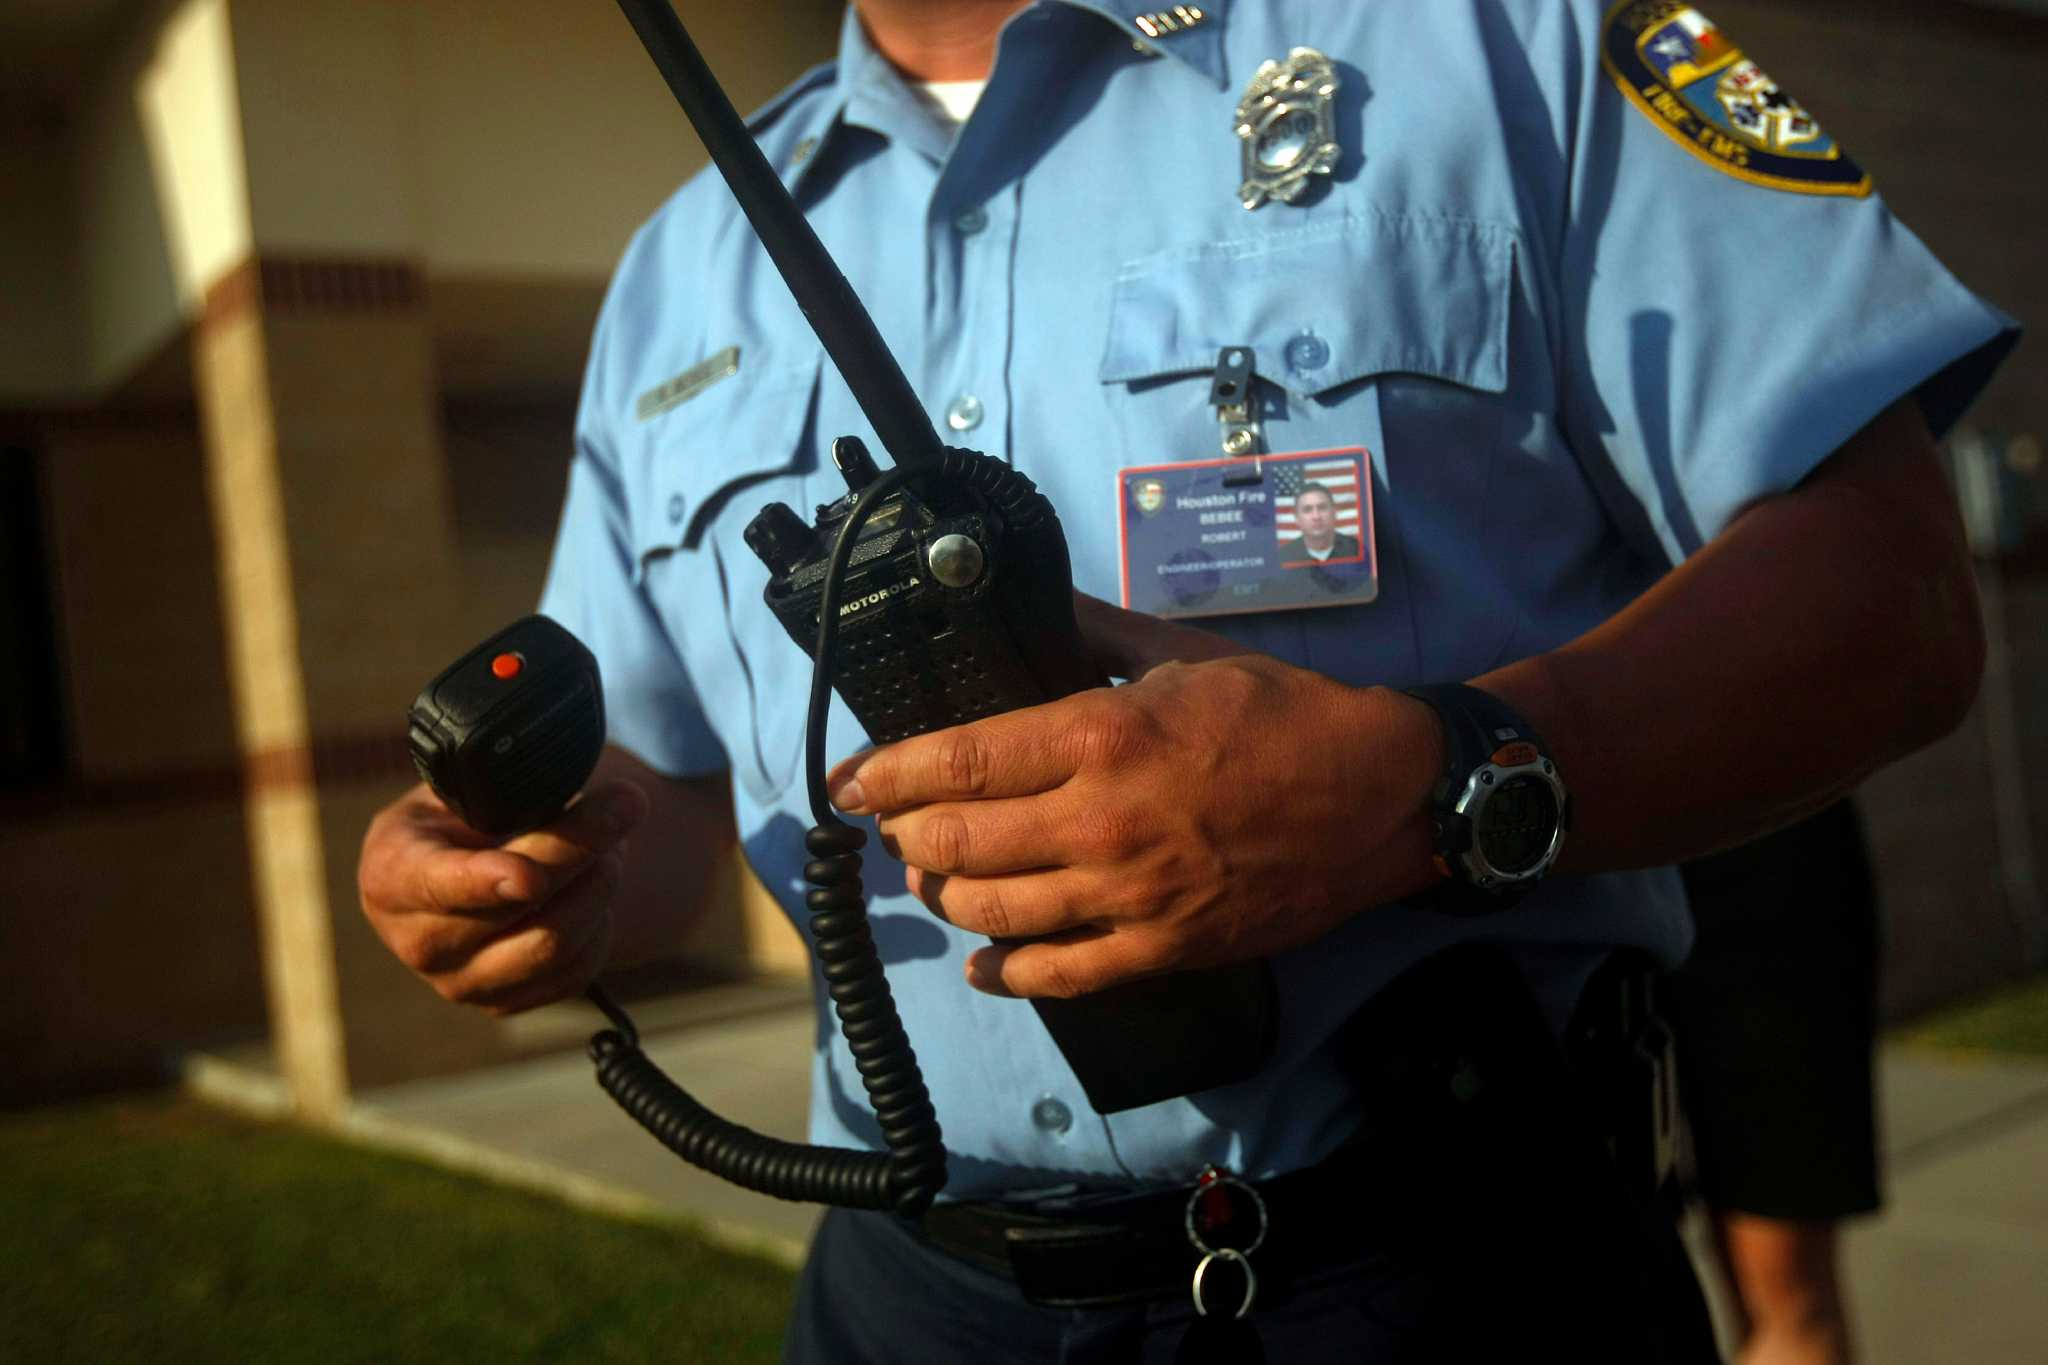 Calling All Cars: The Folks Who Keep Police Radios Humming In Houston Fire Schedule